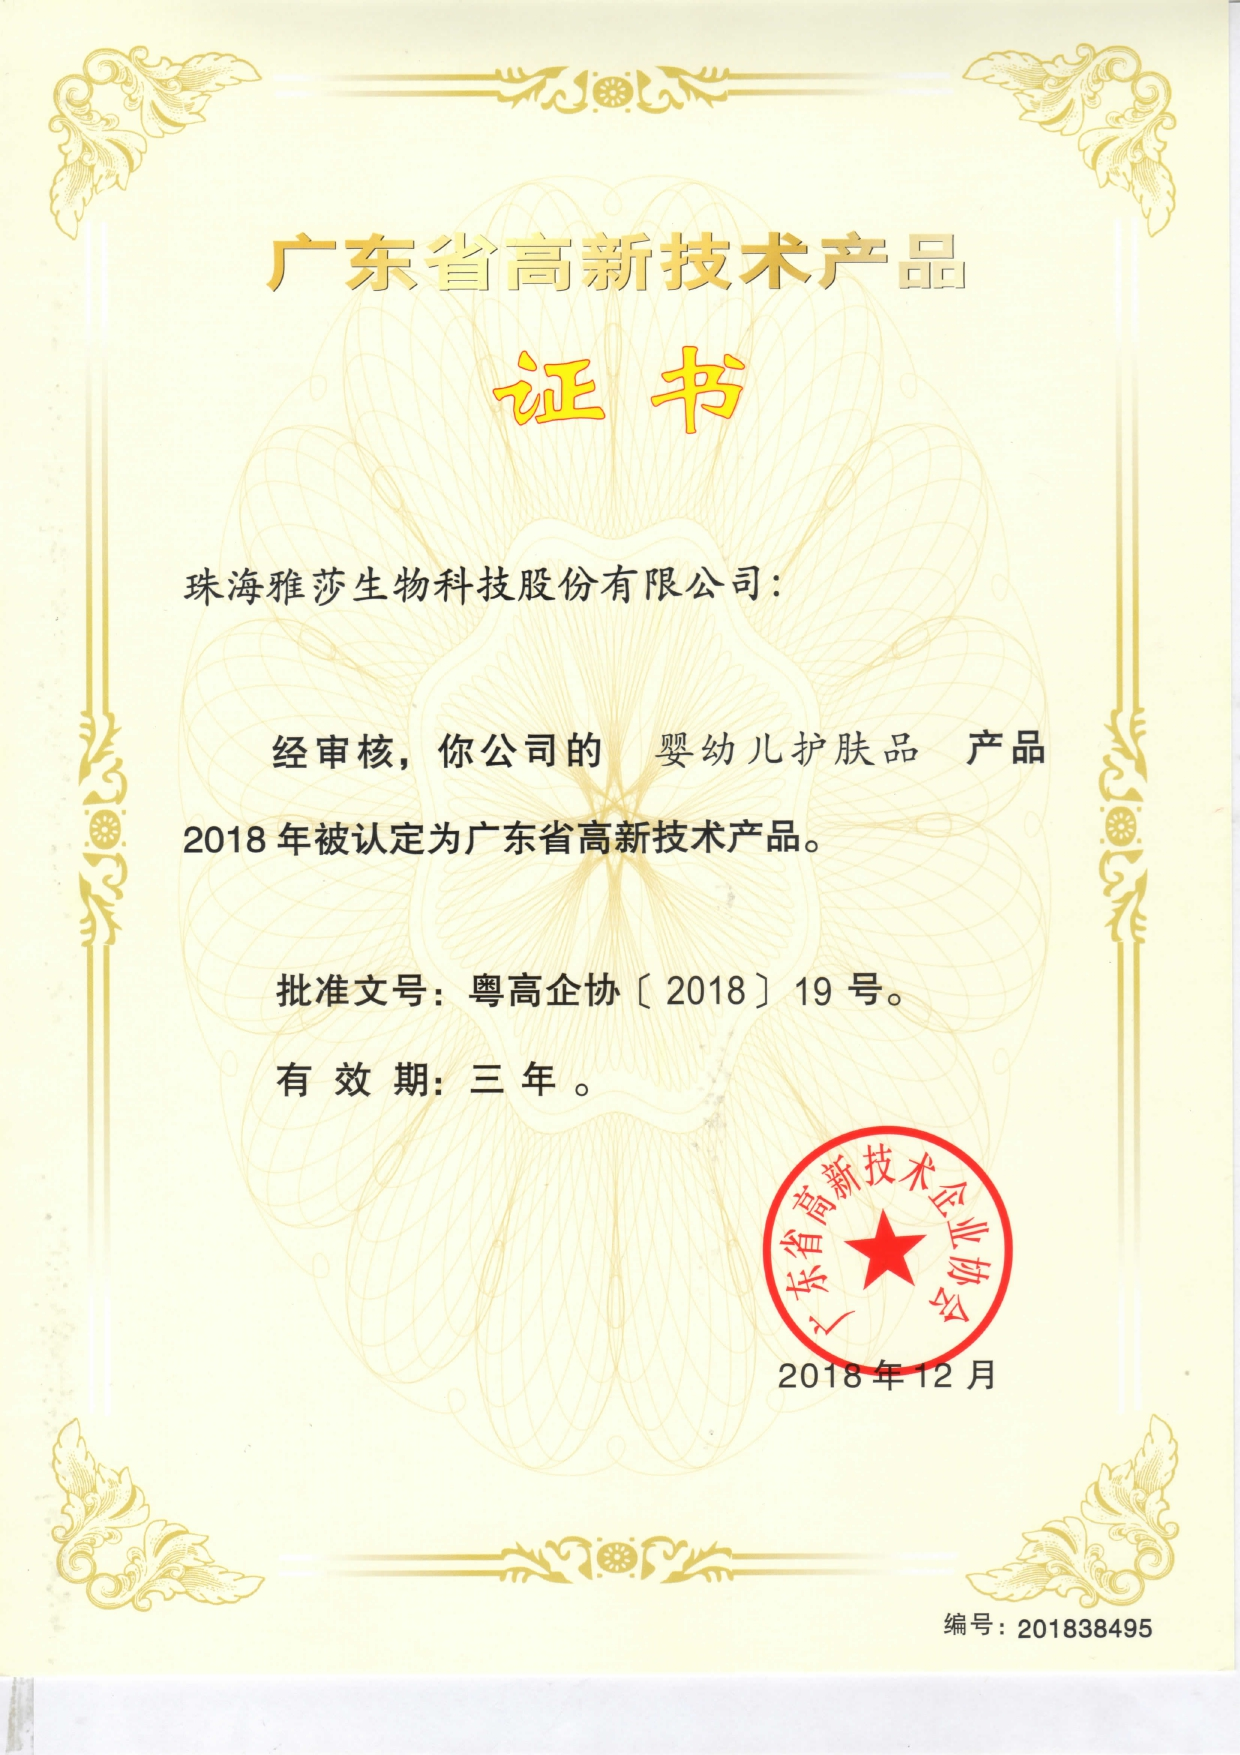 (Infant and Children Series) Certificate of Guangdong Province New High-Tech Product